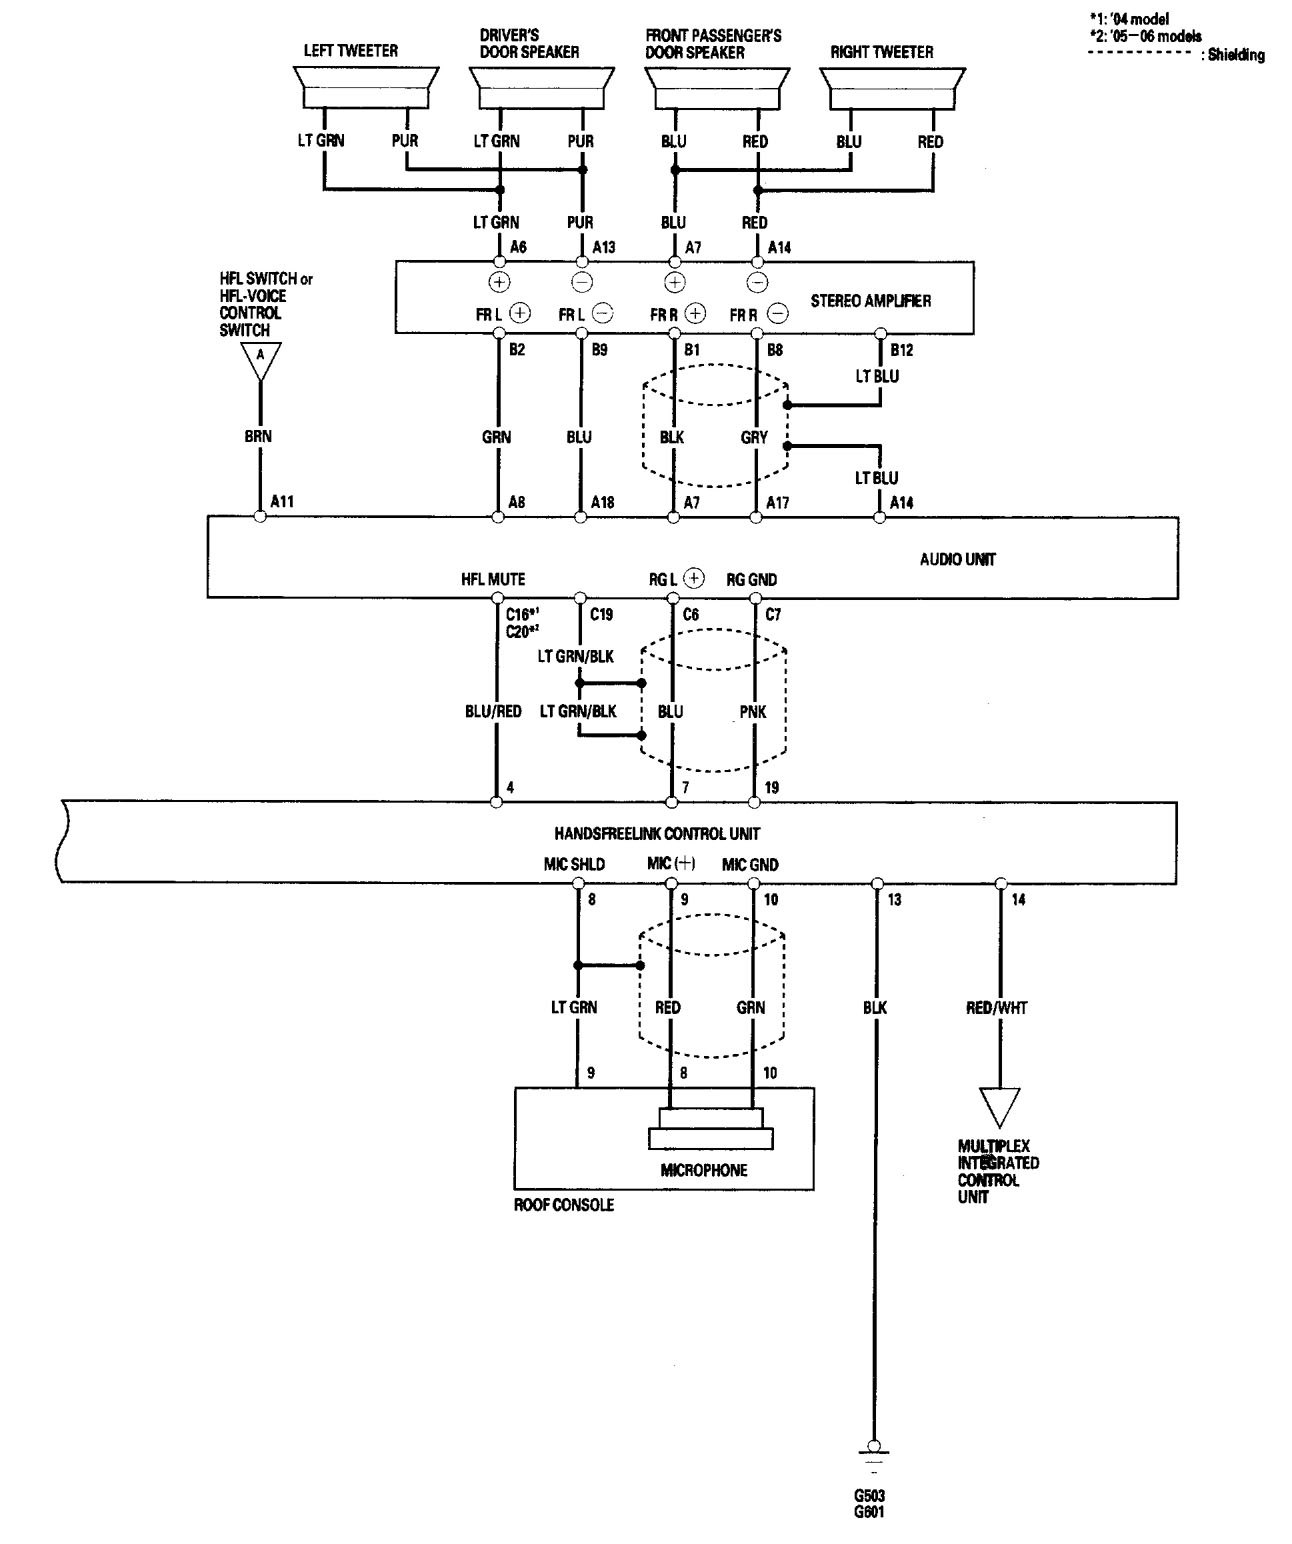 2006 Acura Tl Engine Diagram Ignition Data Schema Schematic Of 2004 Mdx Free Image About Wiring And Kia Sportage Diagrams Auto 2003 02 Sensor 2005